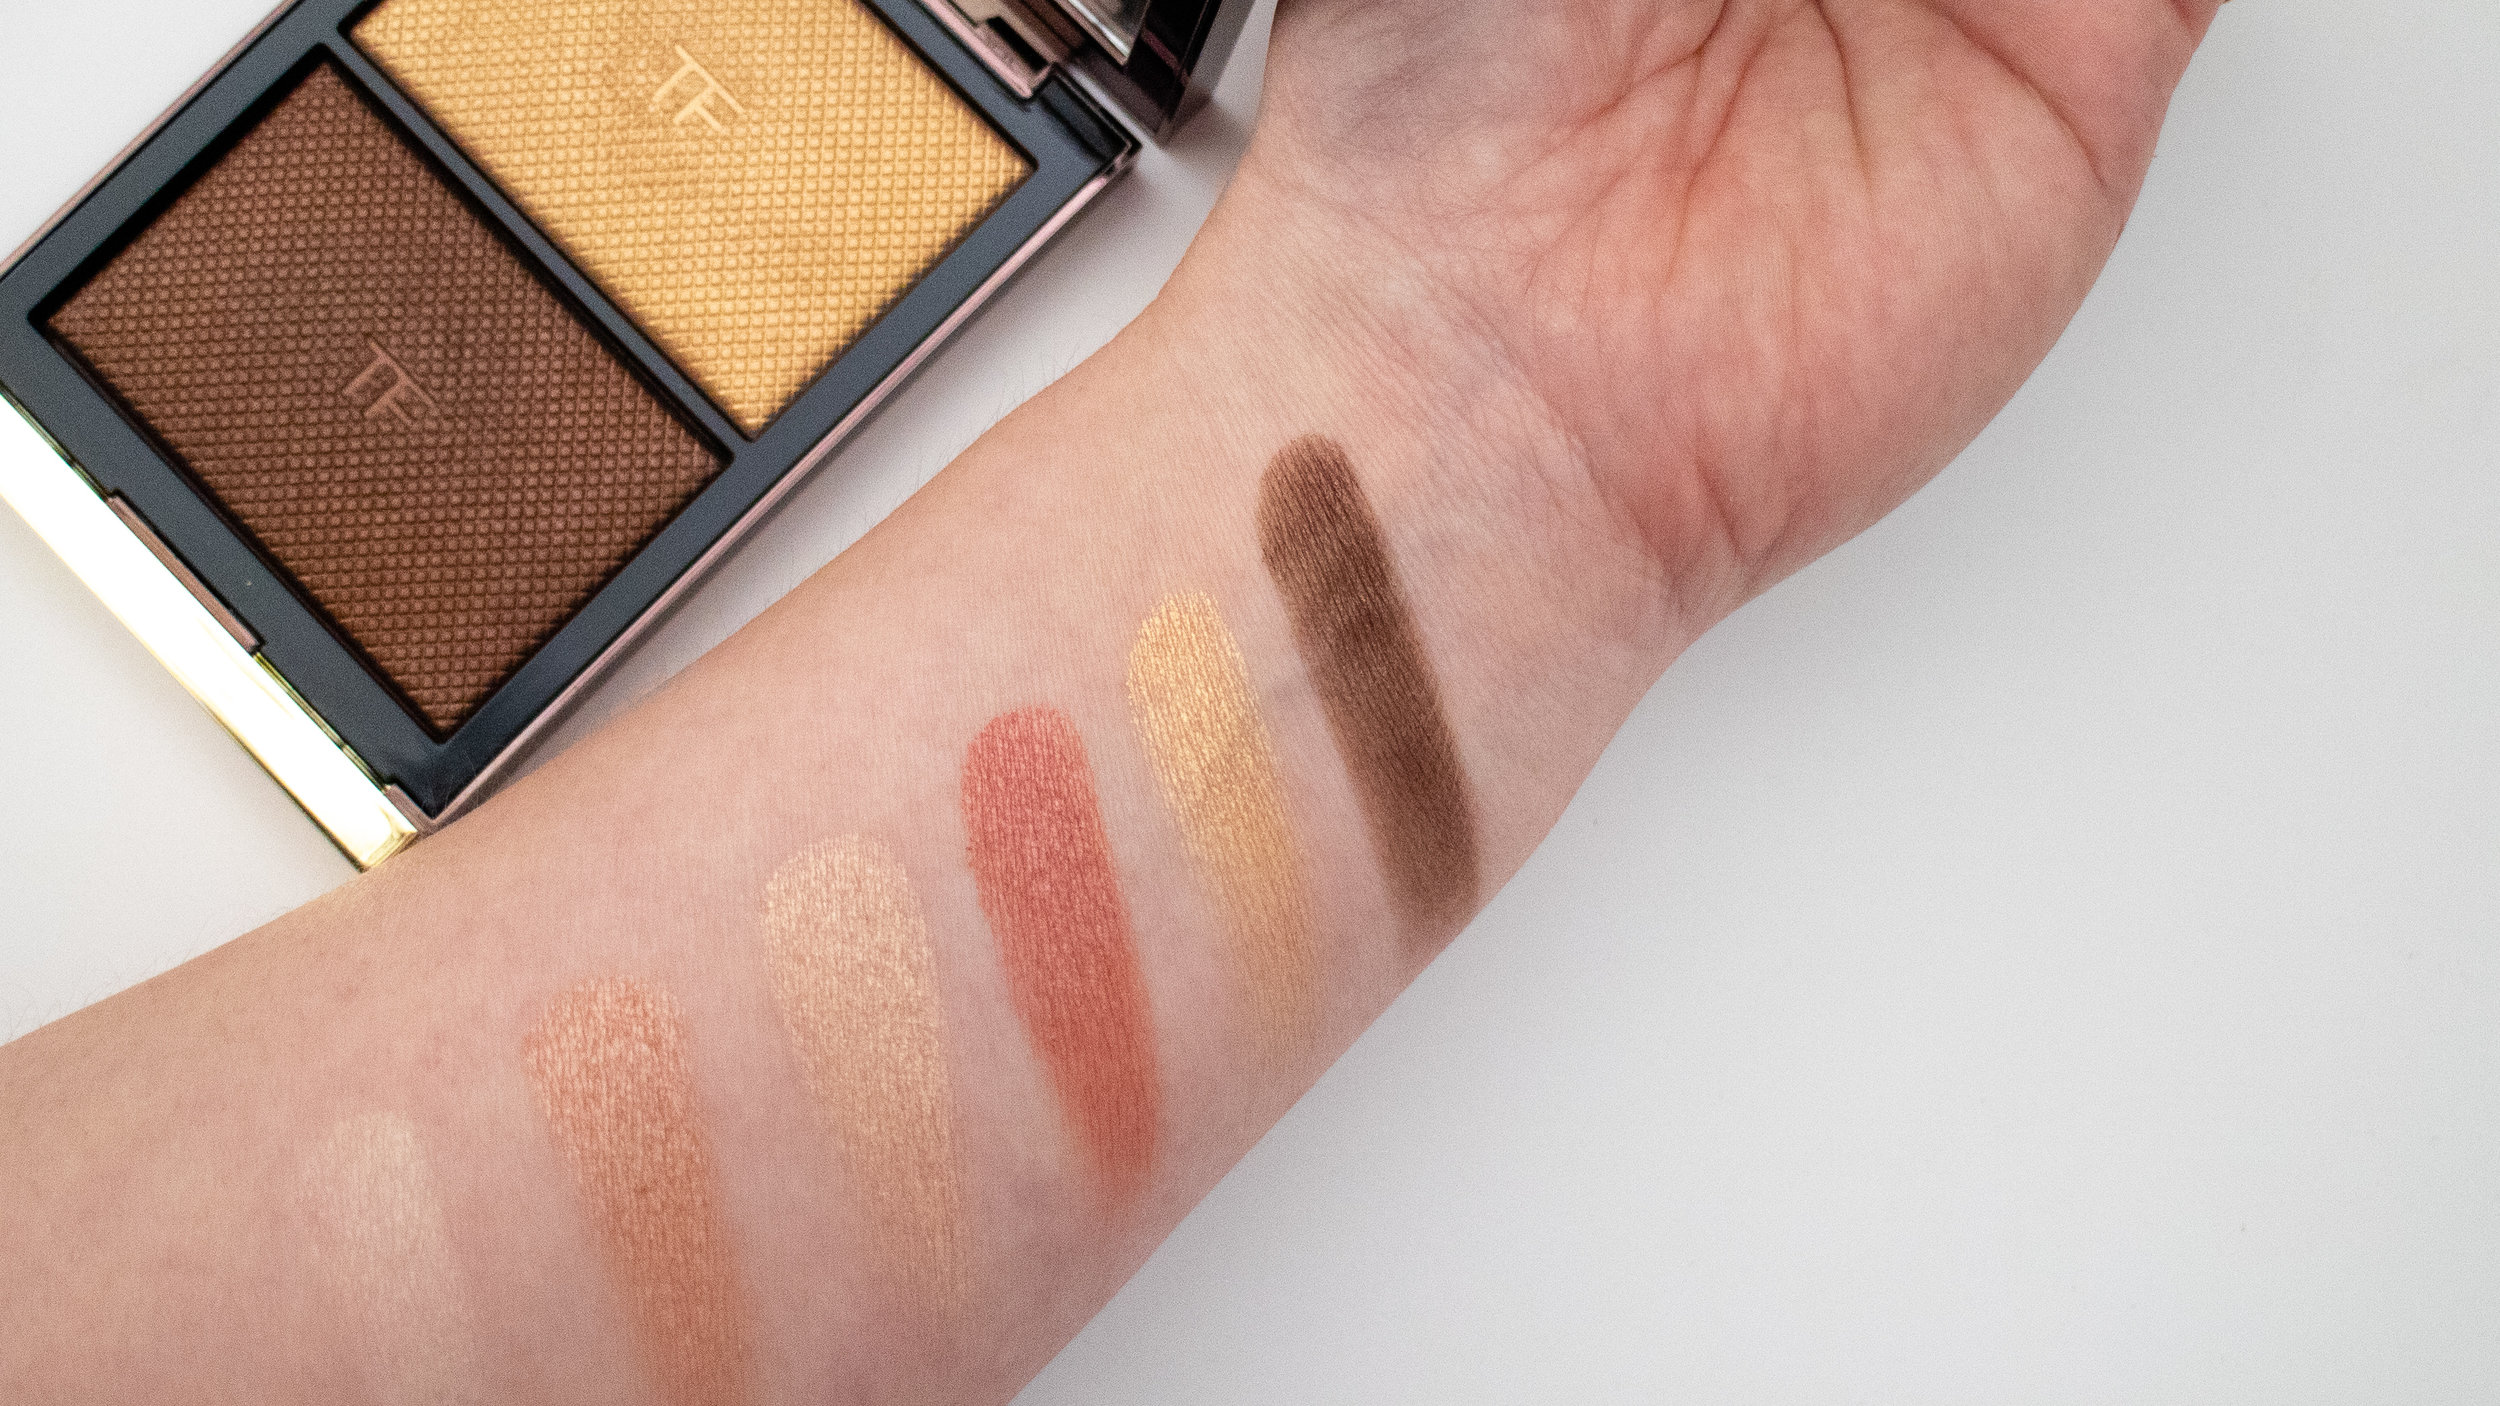 Swatches of Tom Ford Skin Illuminating Powder Duo in Flicker